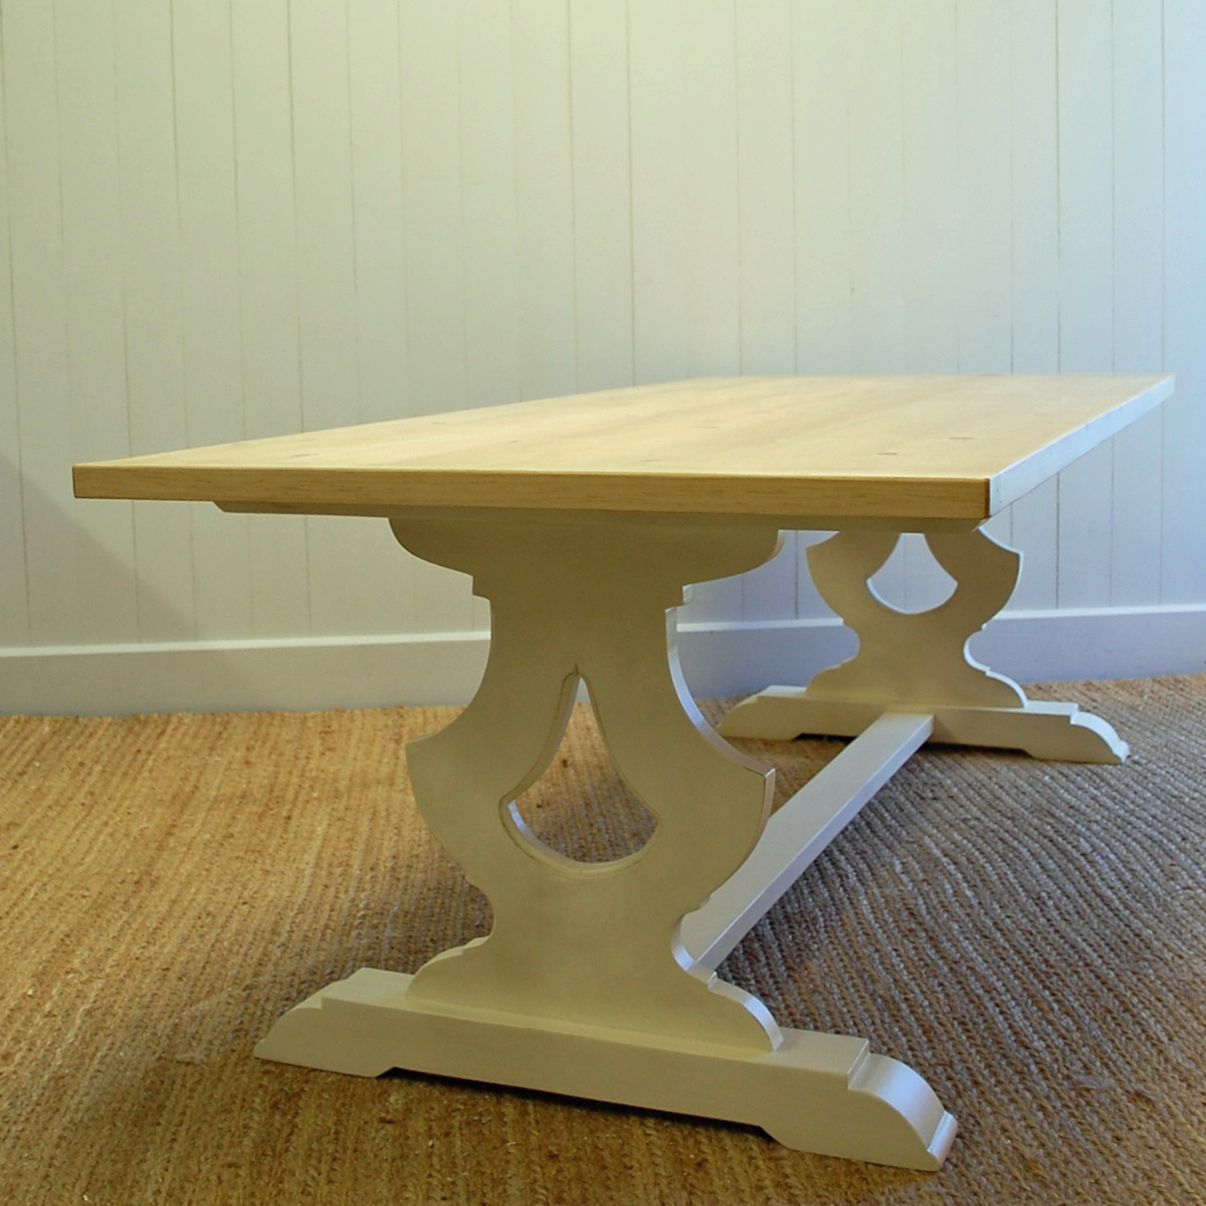 Shop Priage By Zinus Farmhouse Wood Dining Table: Gustavian Farm Dining Table In Two Sizes